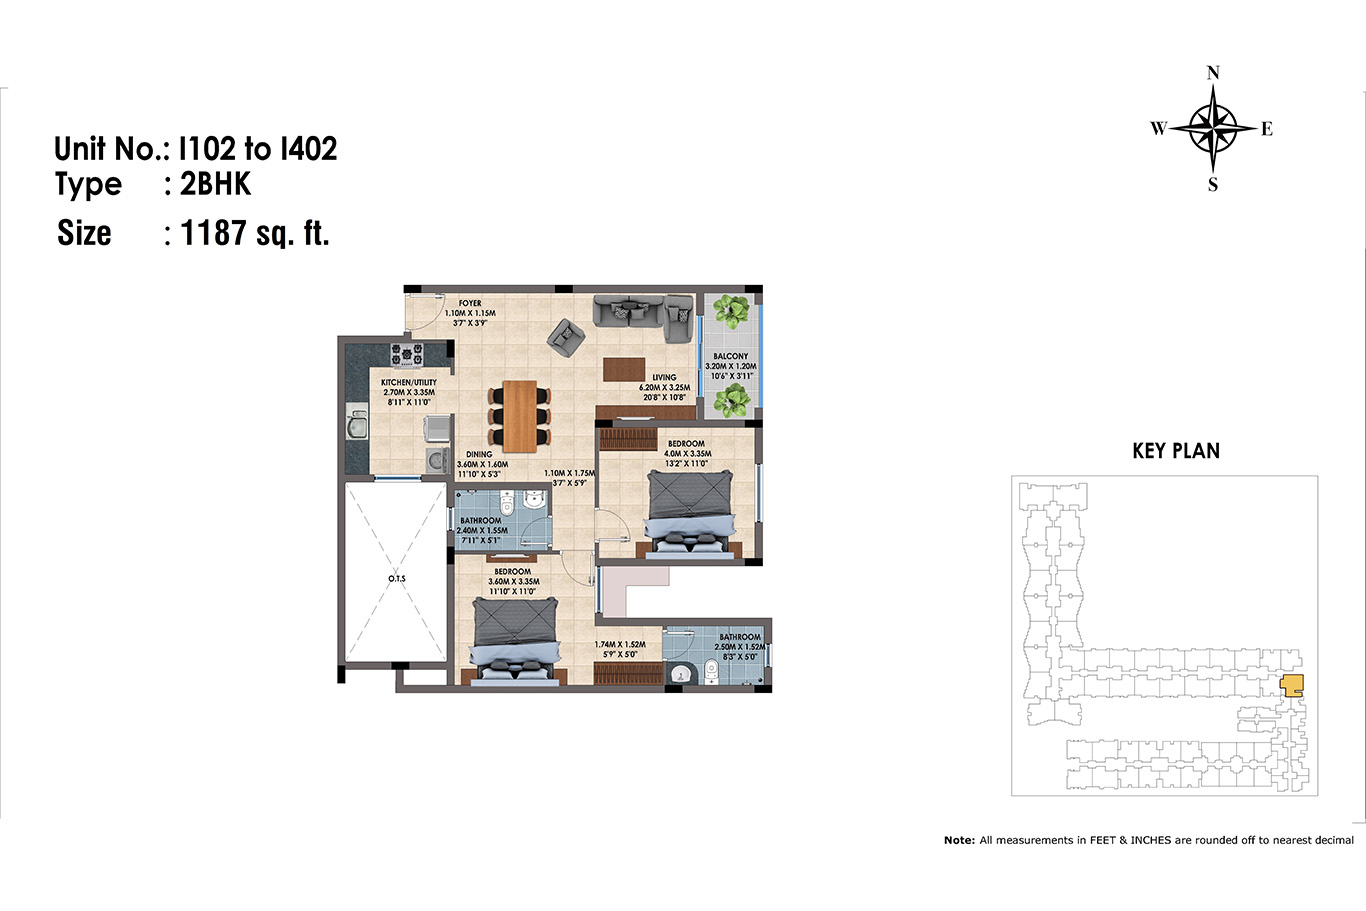 1102 to 1402(2BHK)